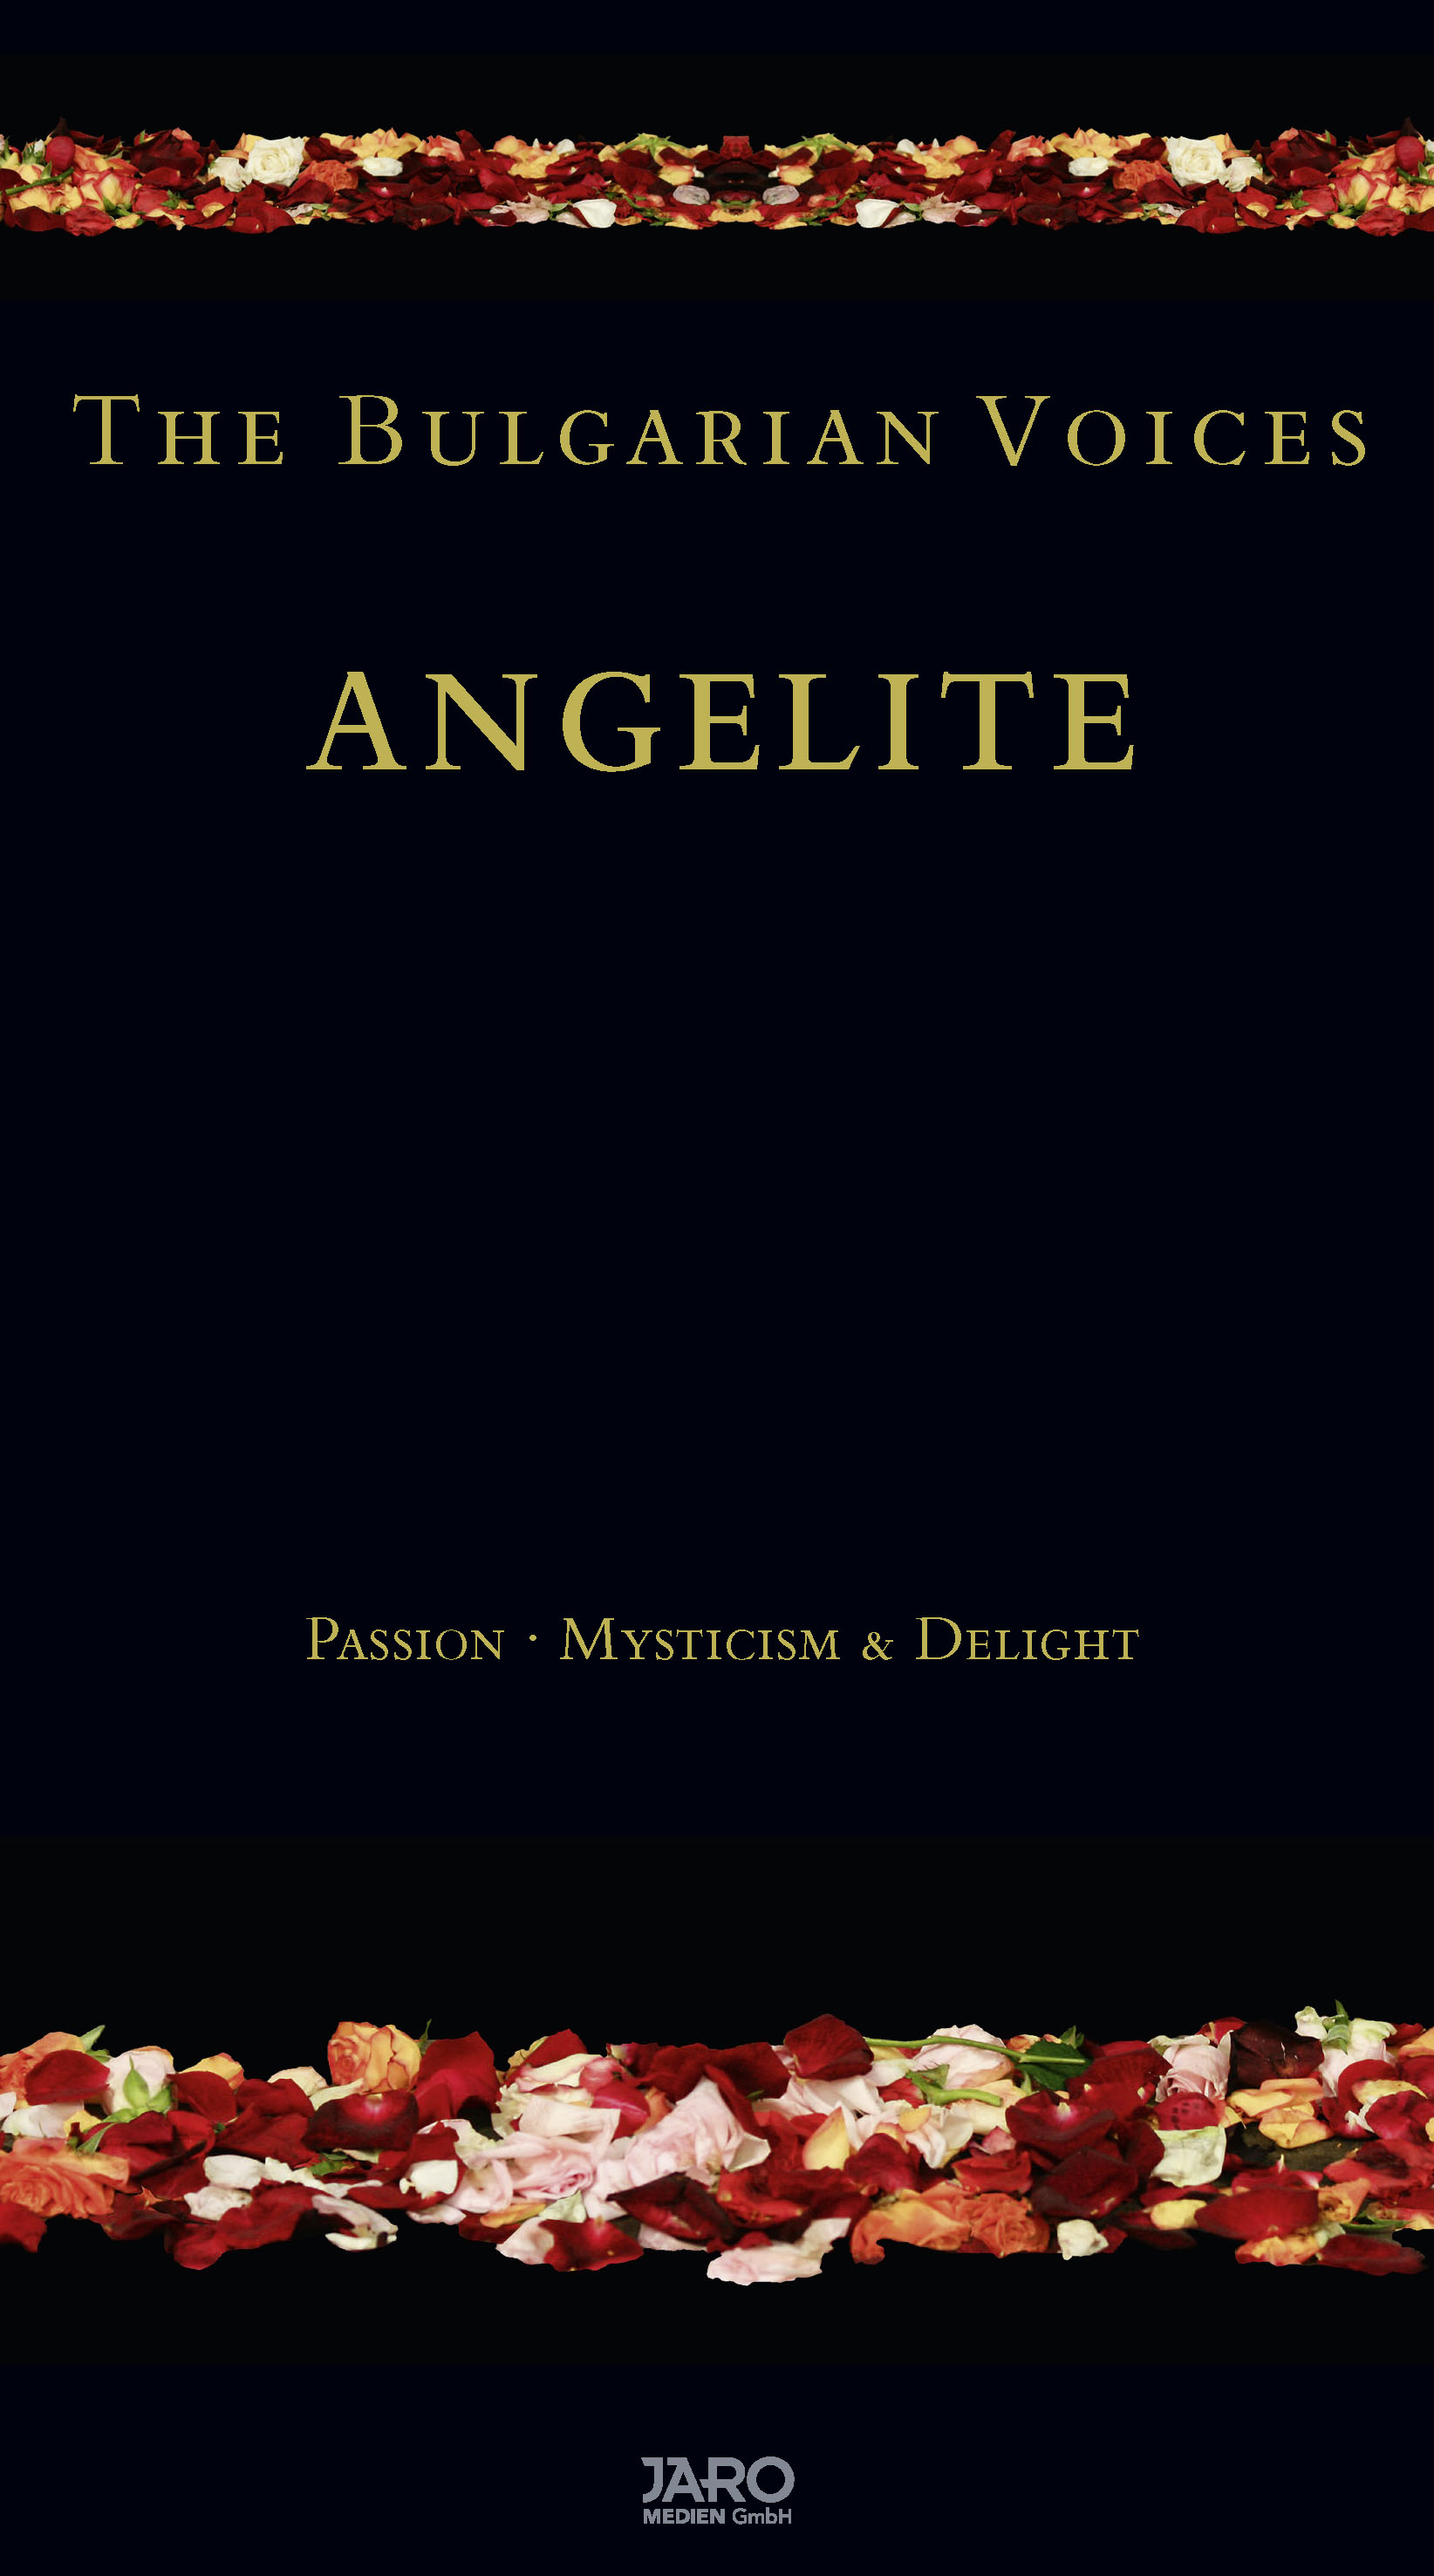 THE BULGARIAN VOICES ANGELITE – Passion . Mysticism & Delight